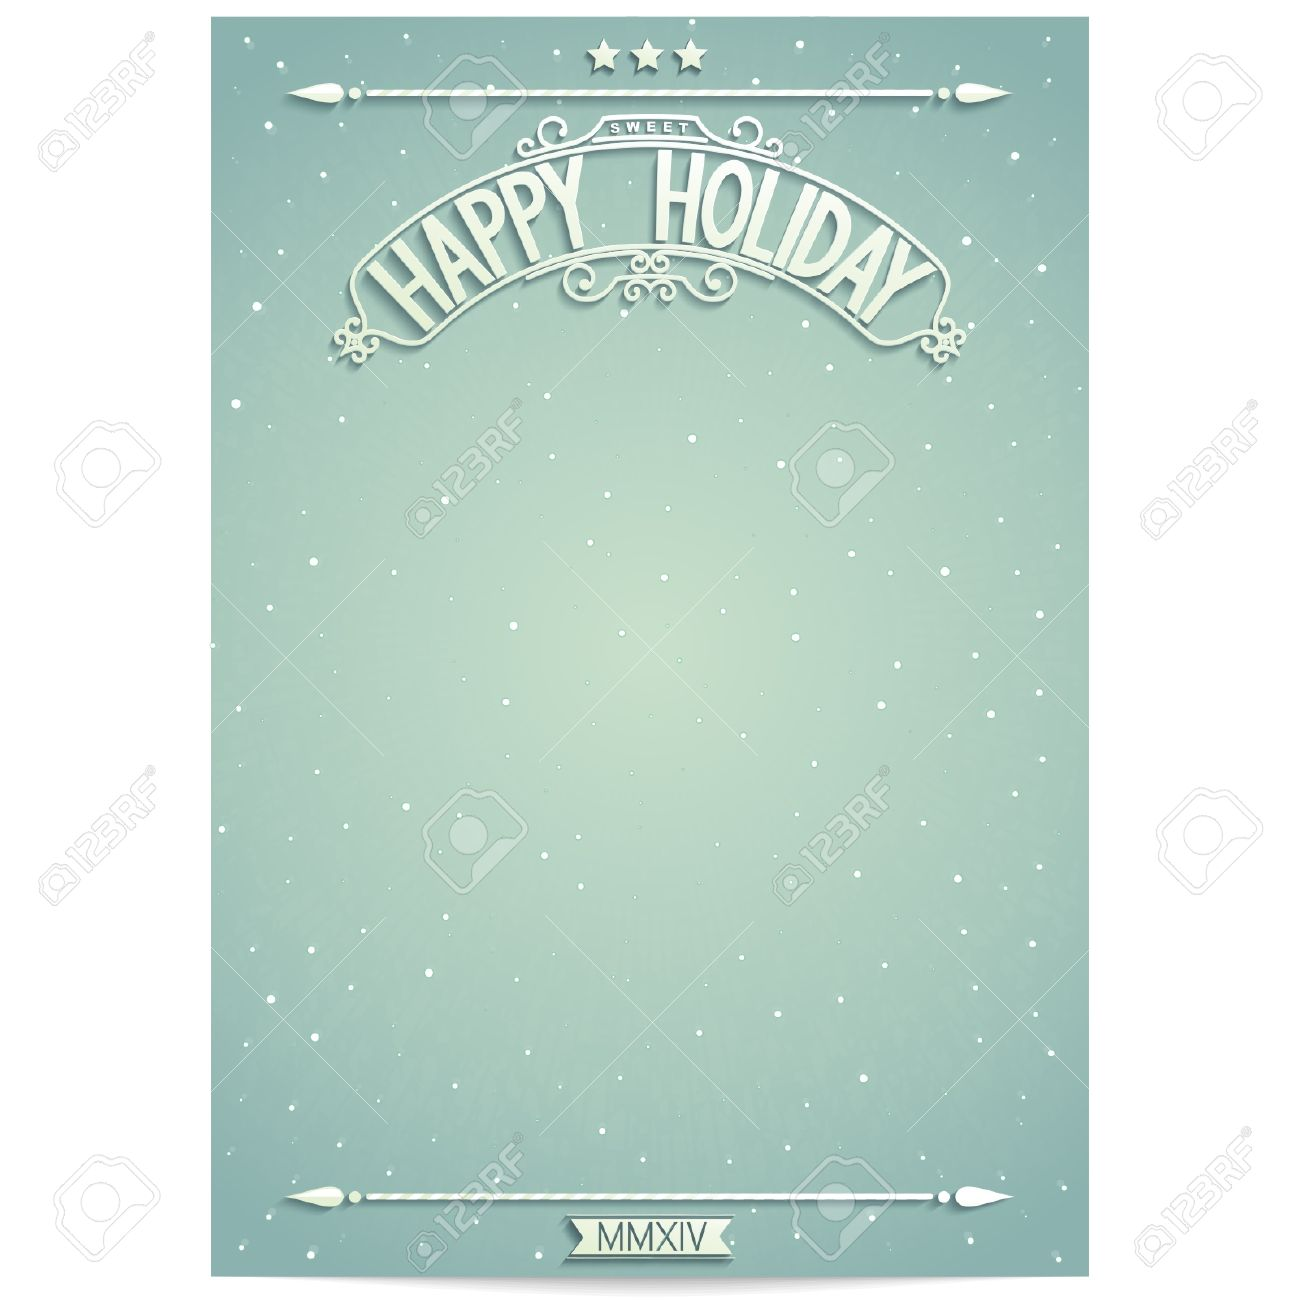 happy holiday poster template for wishes royalty cliparts happy holiday poster template for wishes stock vector 24889730